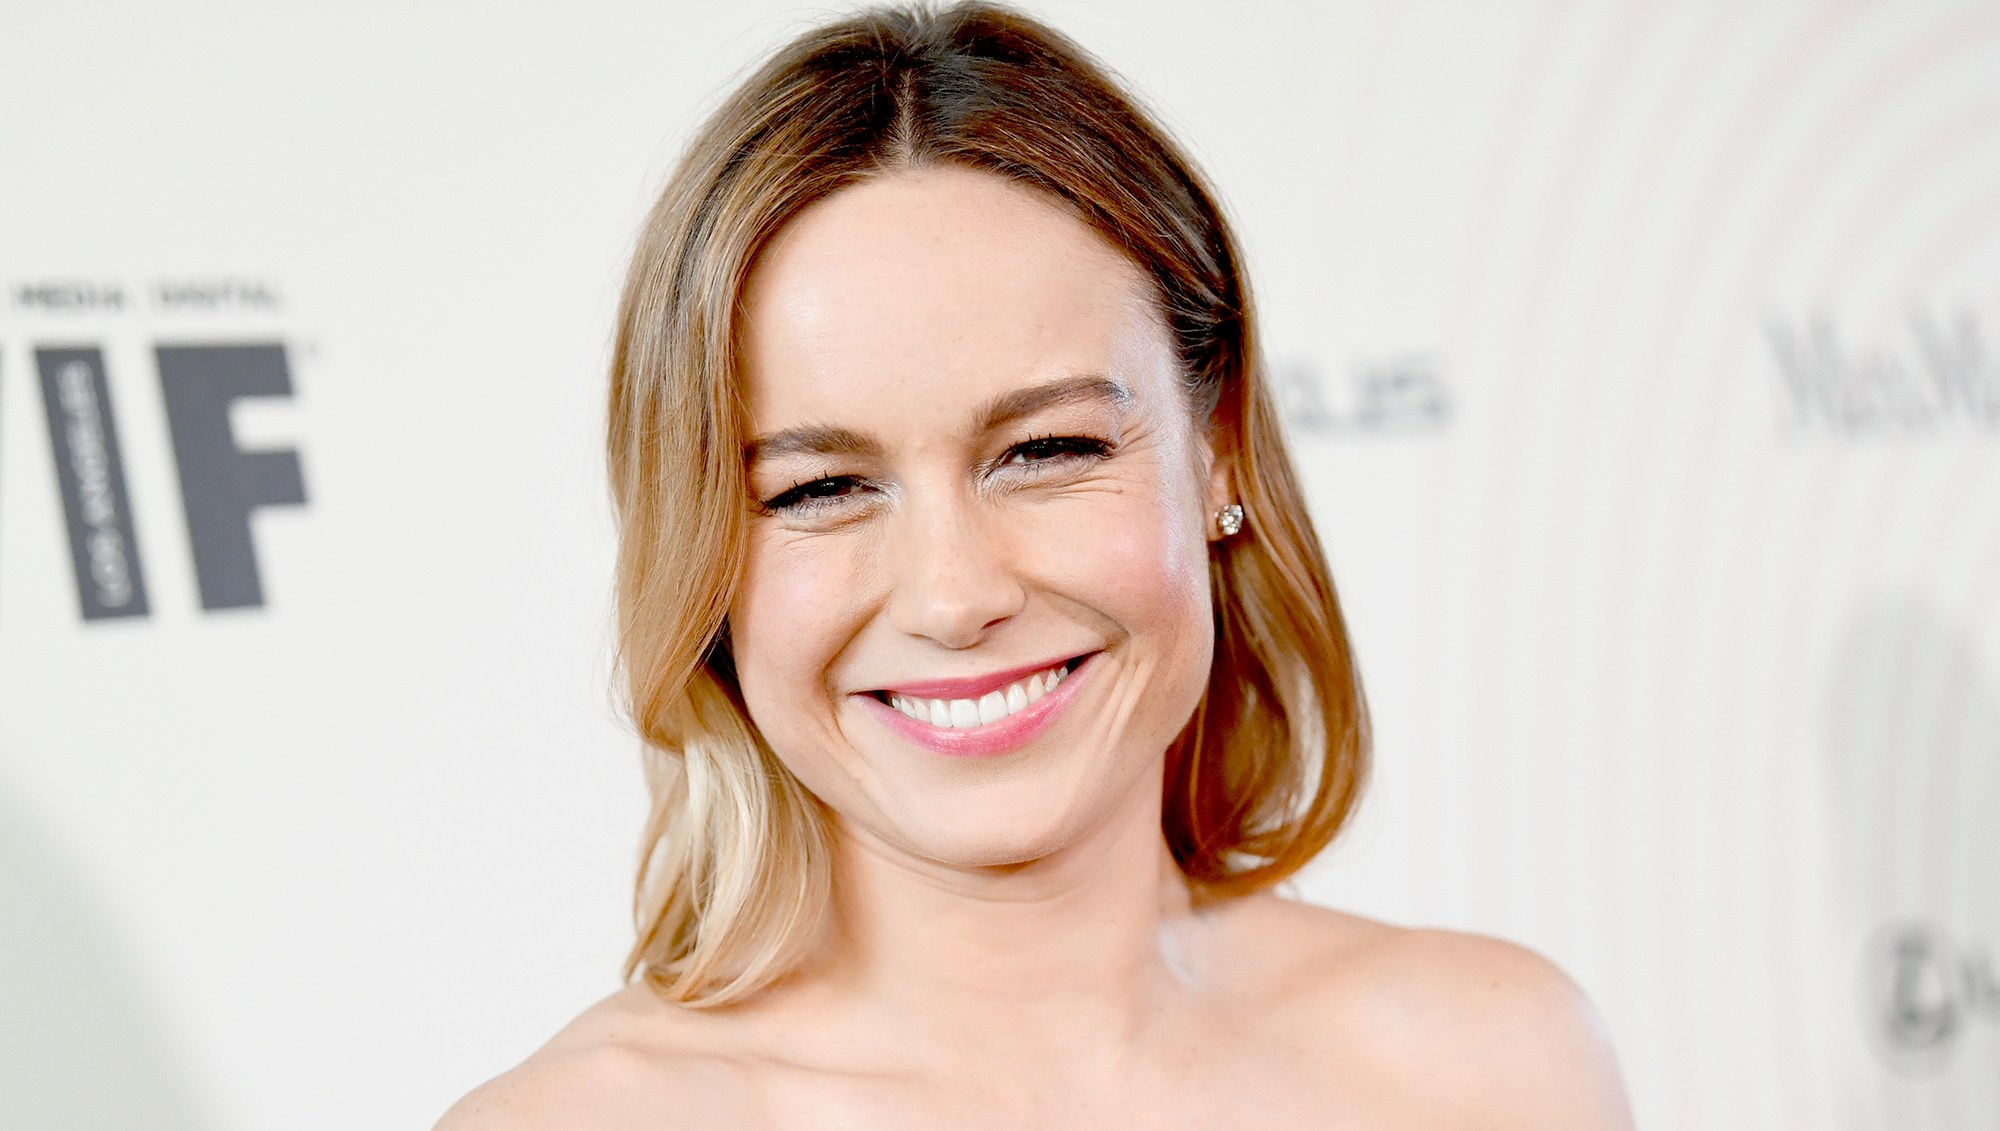 Brie-Larson-Workout-Reward